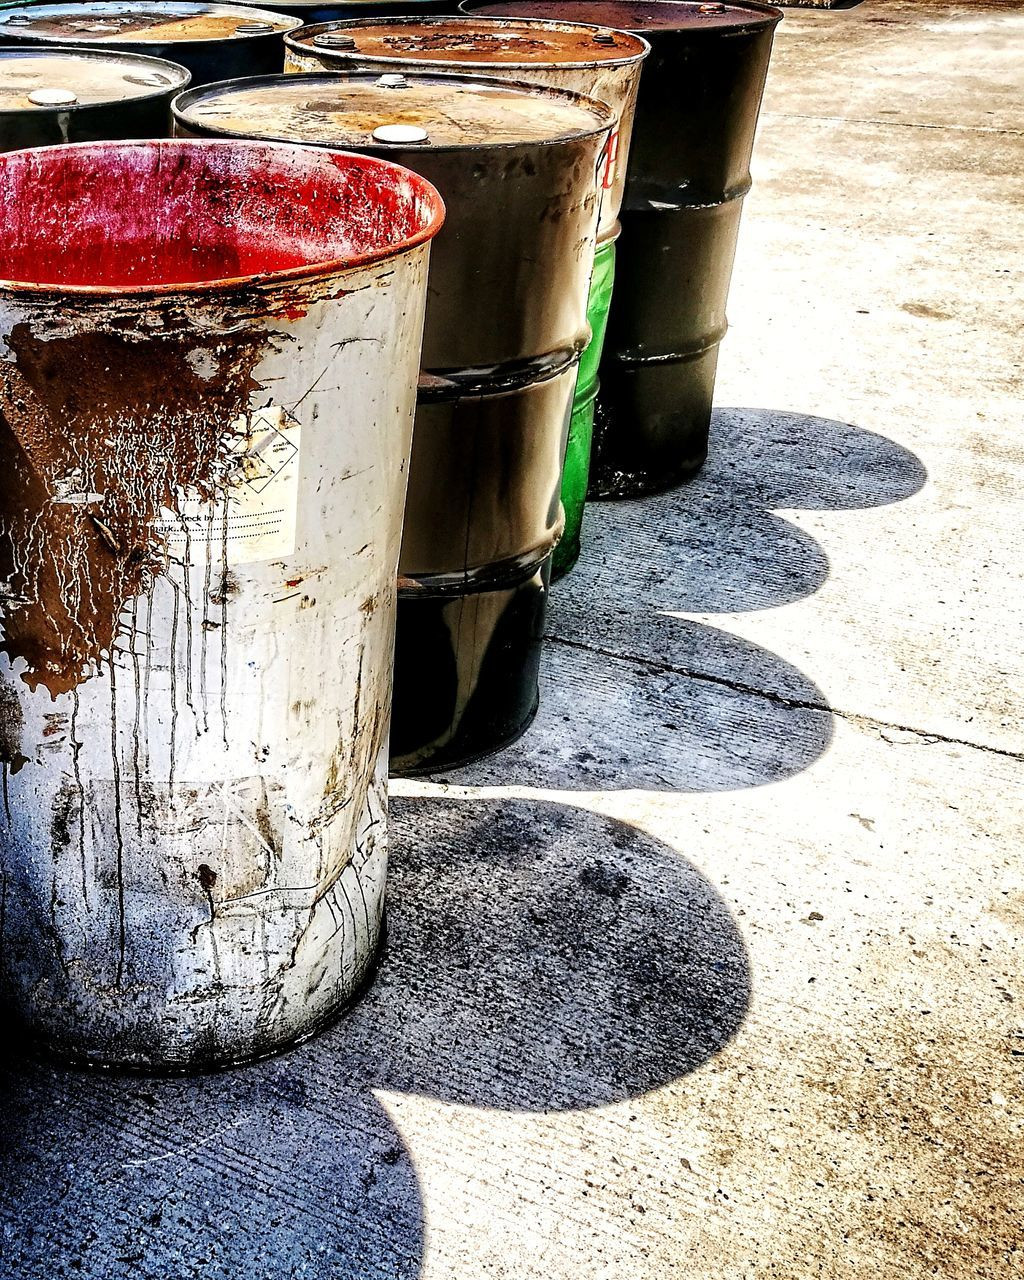 shadow, sunlight, day, outdoors, no people, barrel, drum - container, nature